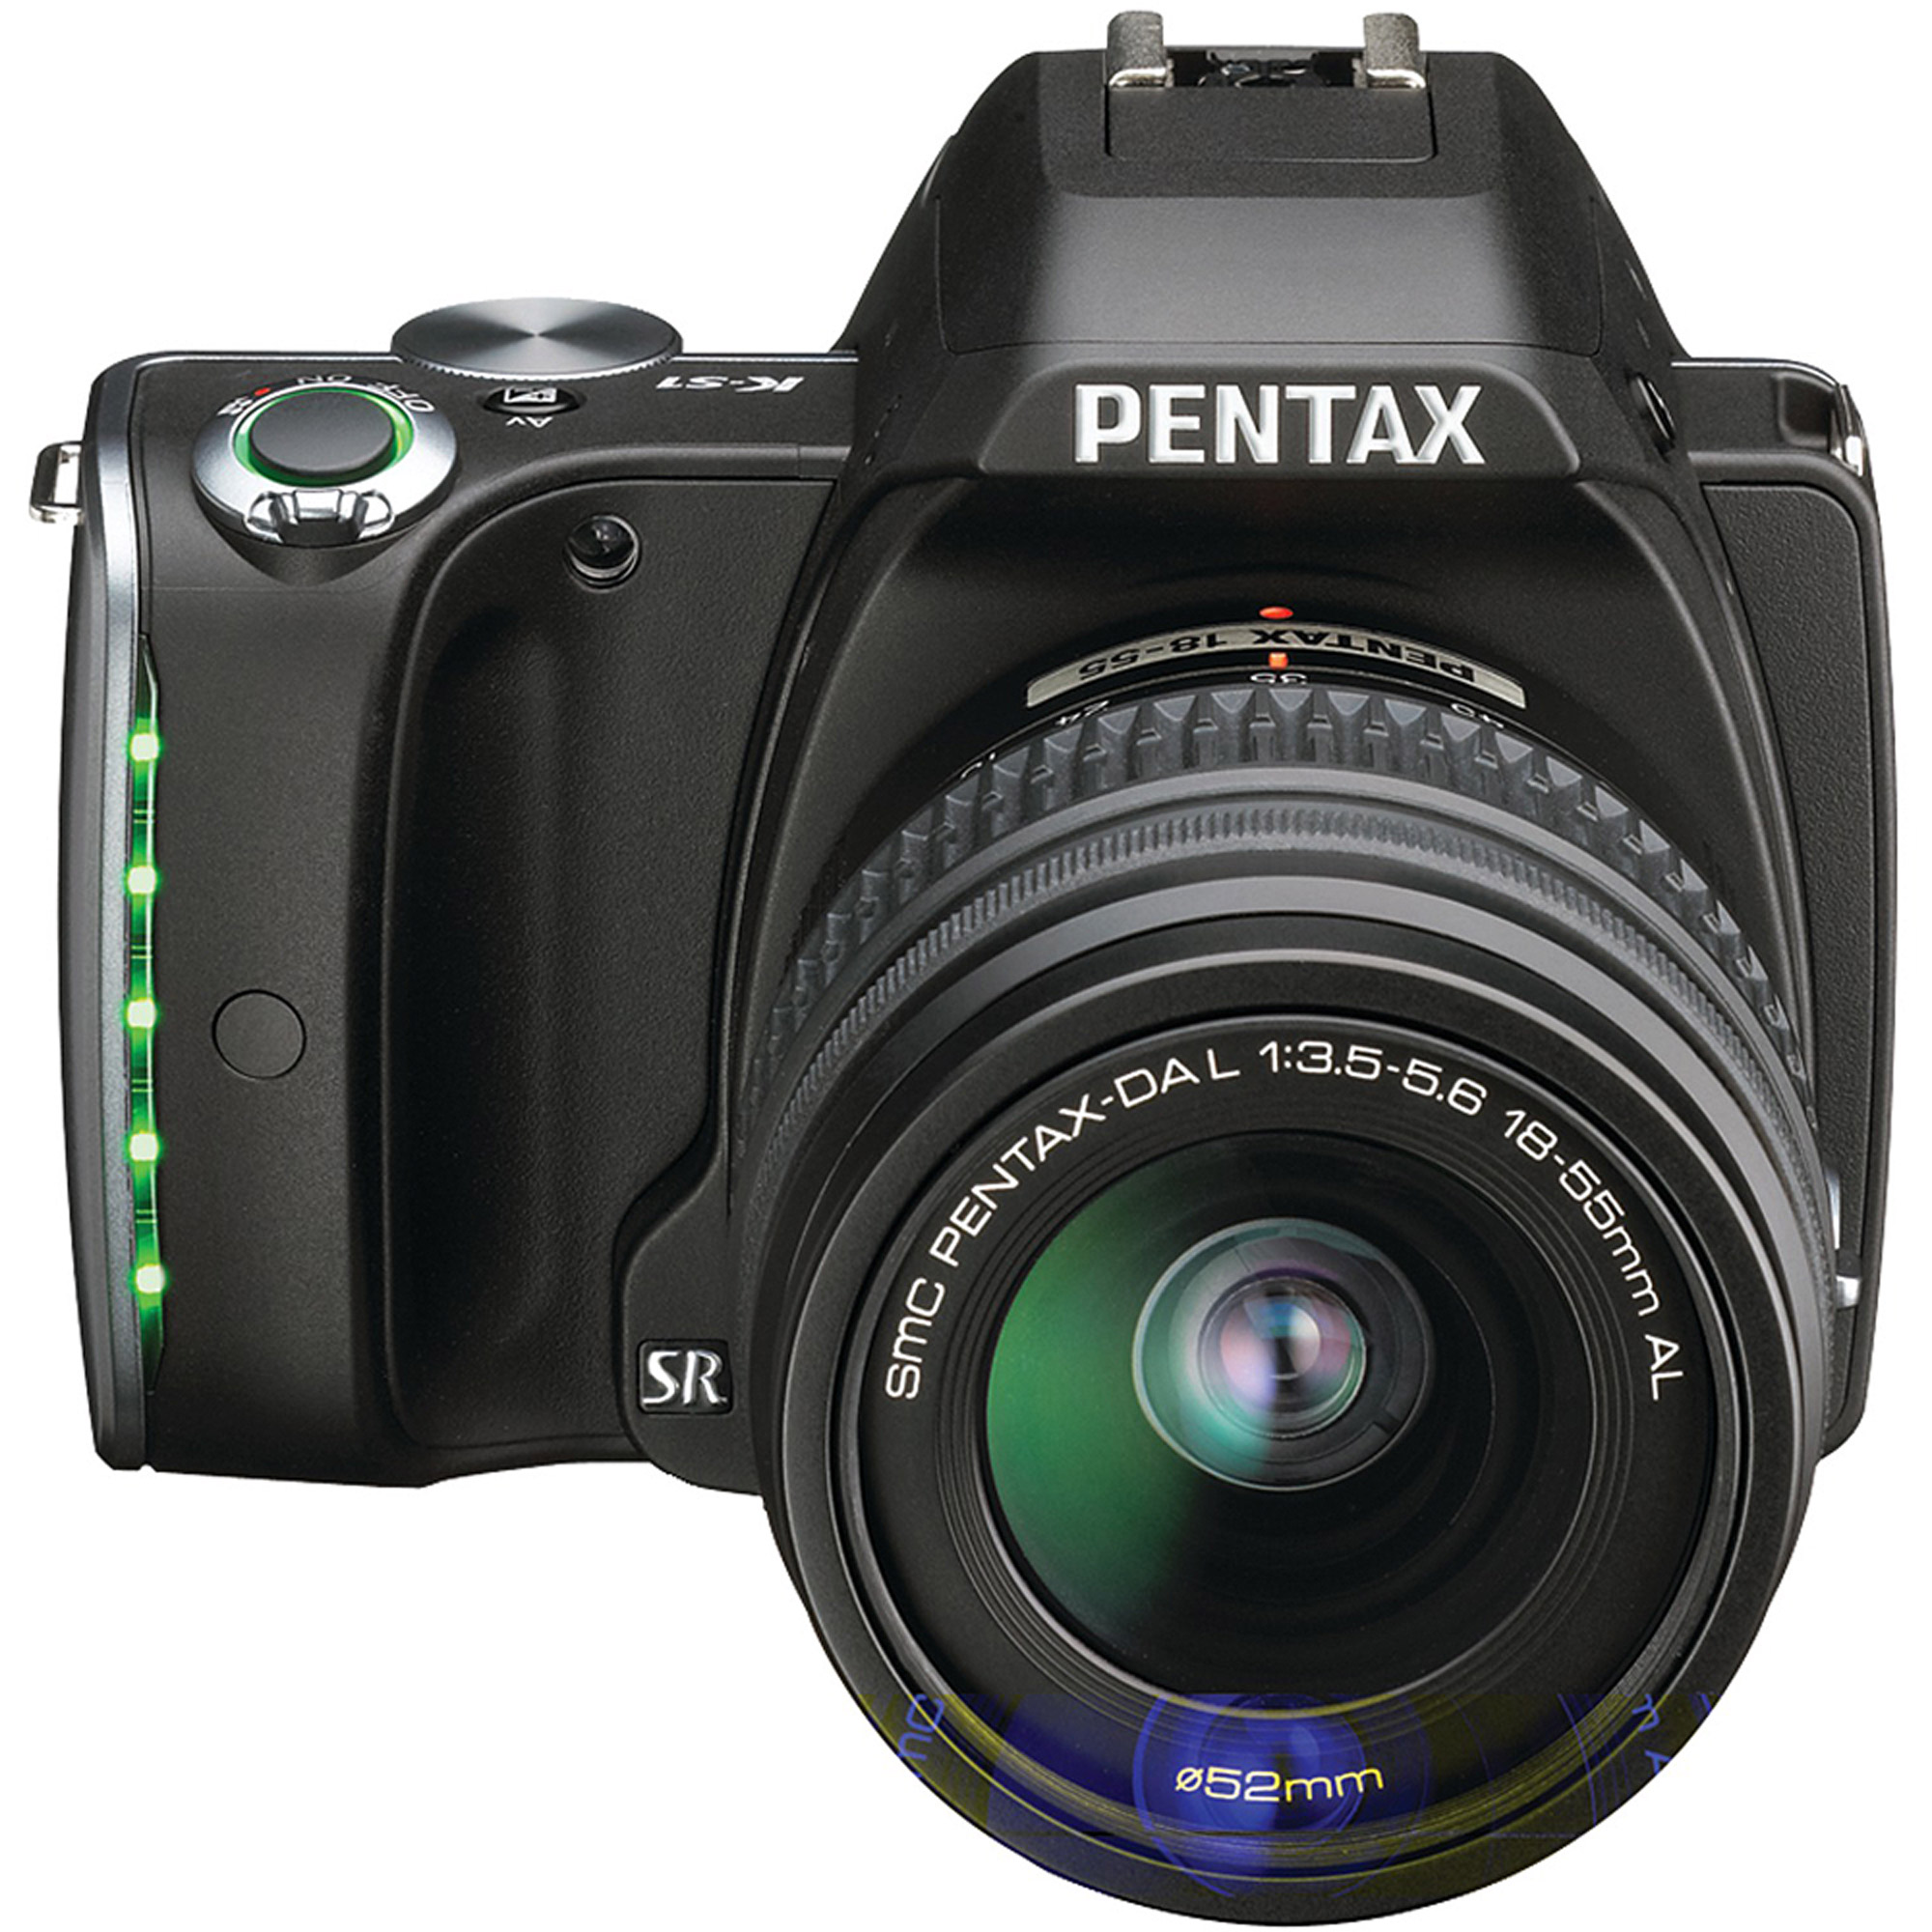 Pentax K-S1 - Digital camera - High Definition - SLR - 20.12 MP - 3 x optical zoom DA L 18-55mm AL lens - black